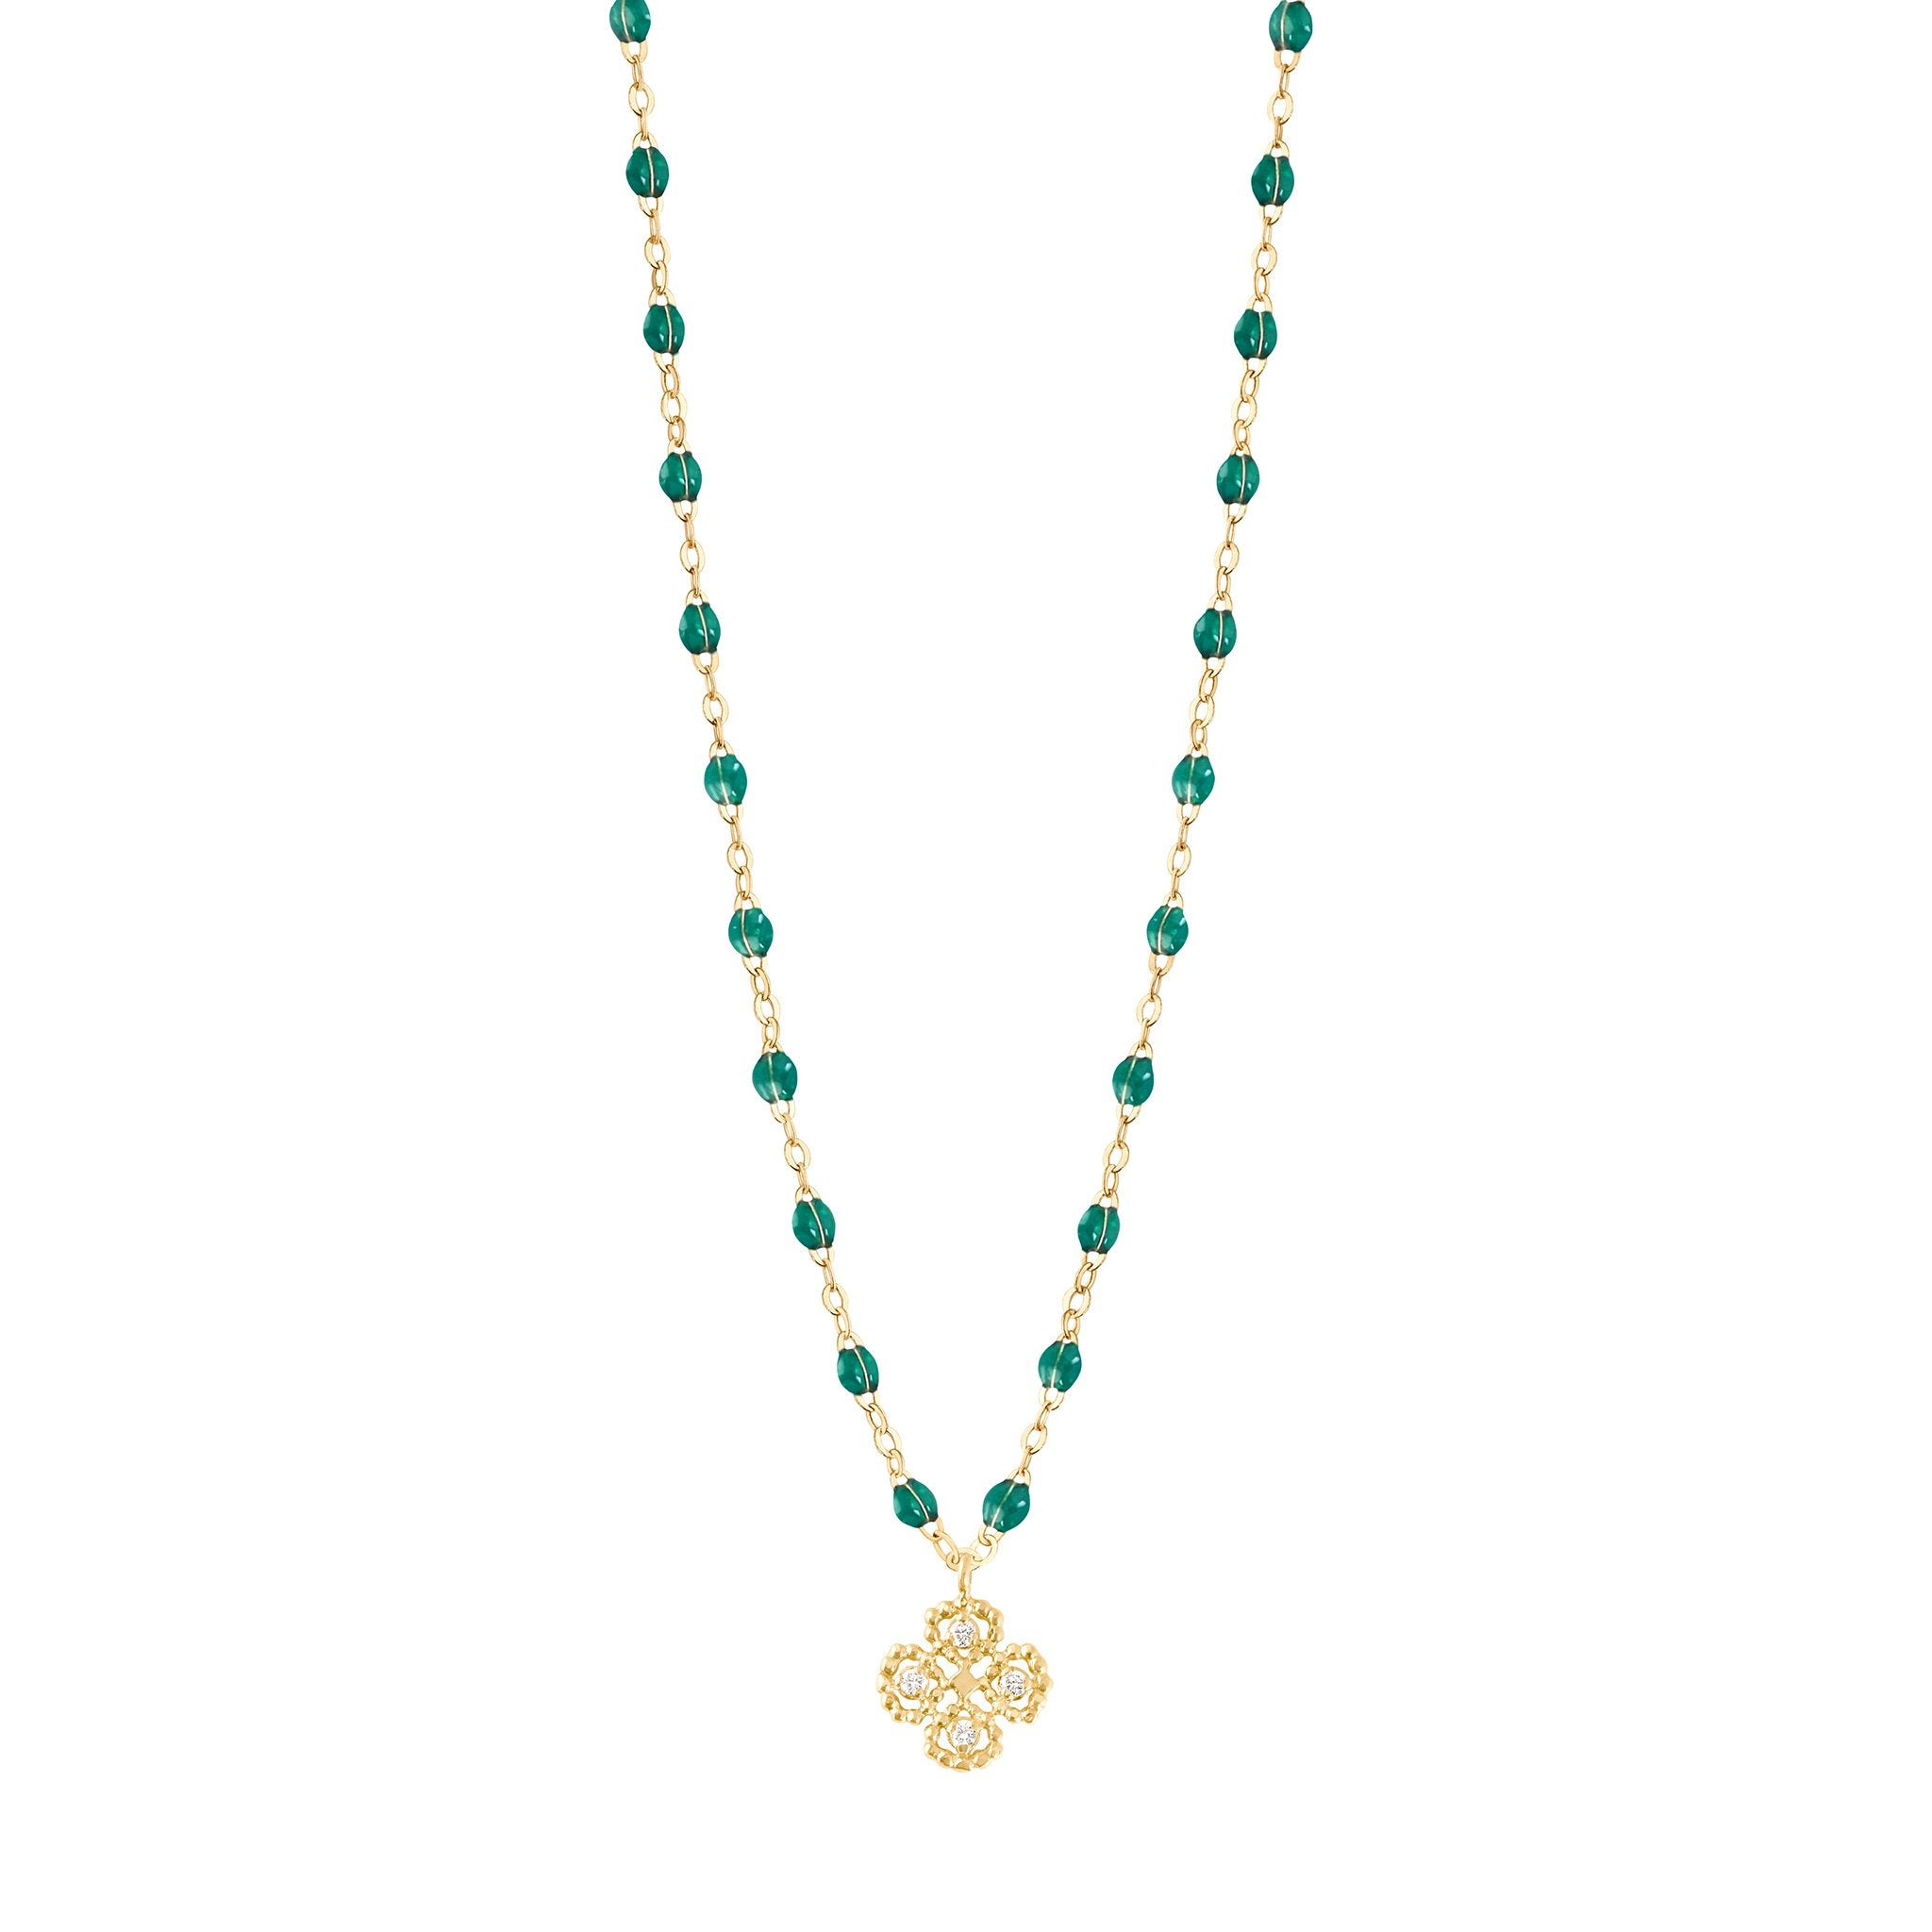 Gigi Clozeau - Lucky Clover Classic Gigi Emerald diamonds necklace, Yellow Gold, 16.5